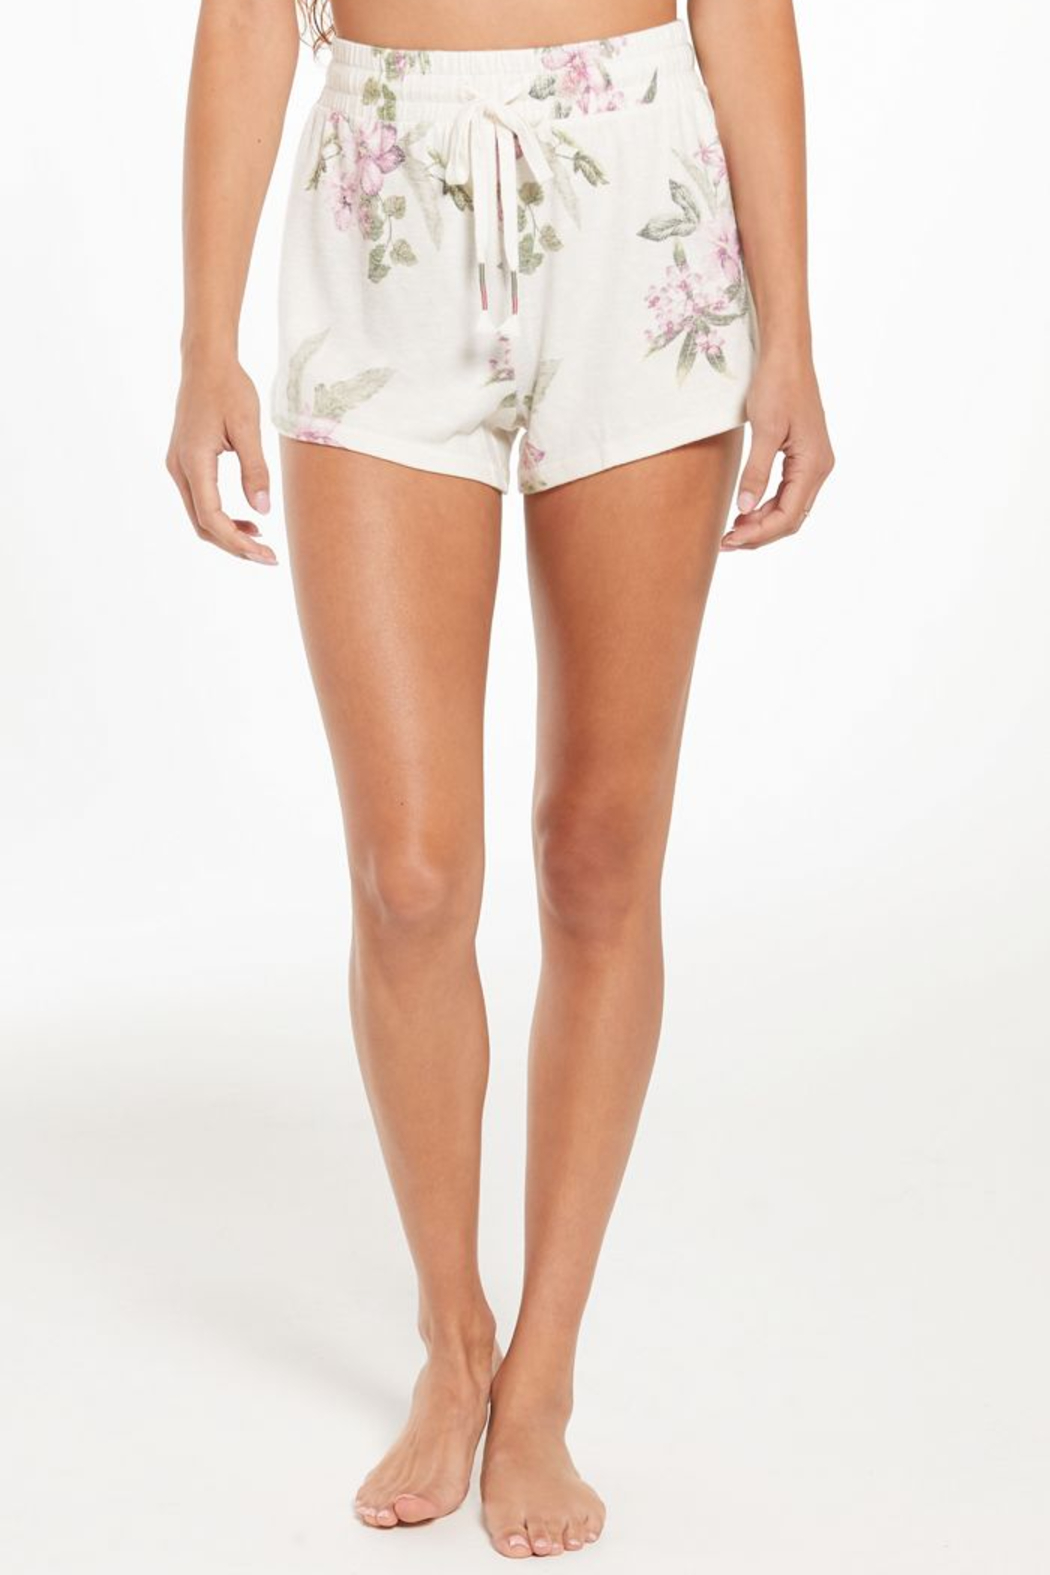 z supply Mia Spring Floral Short - Main Image